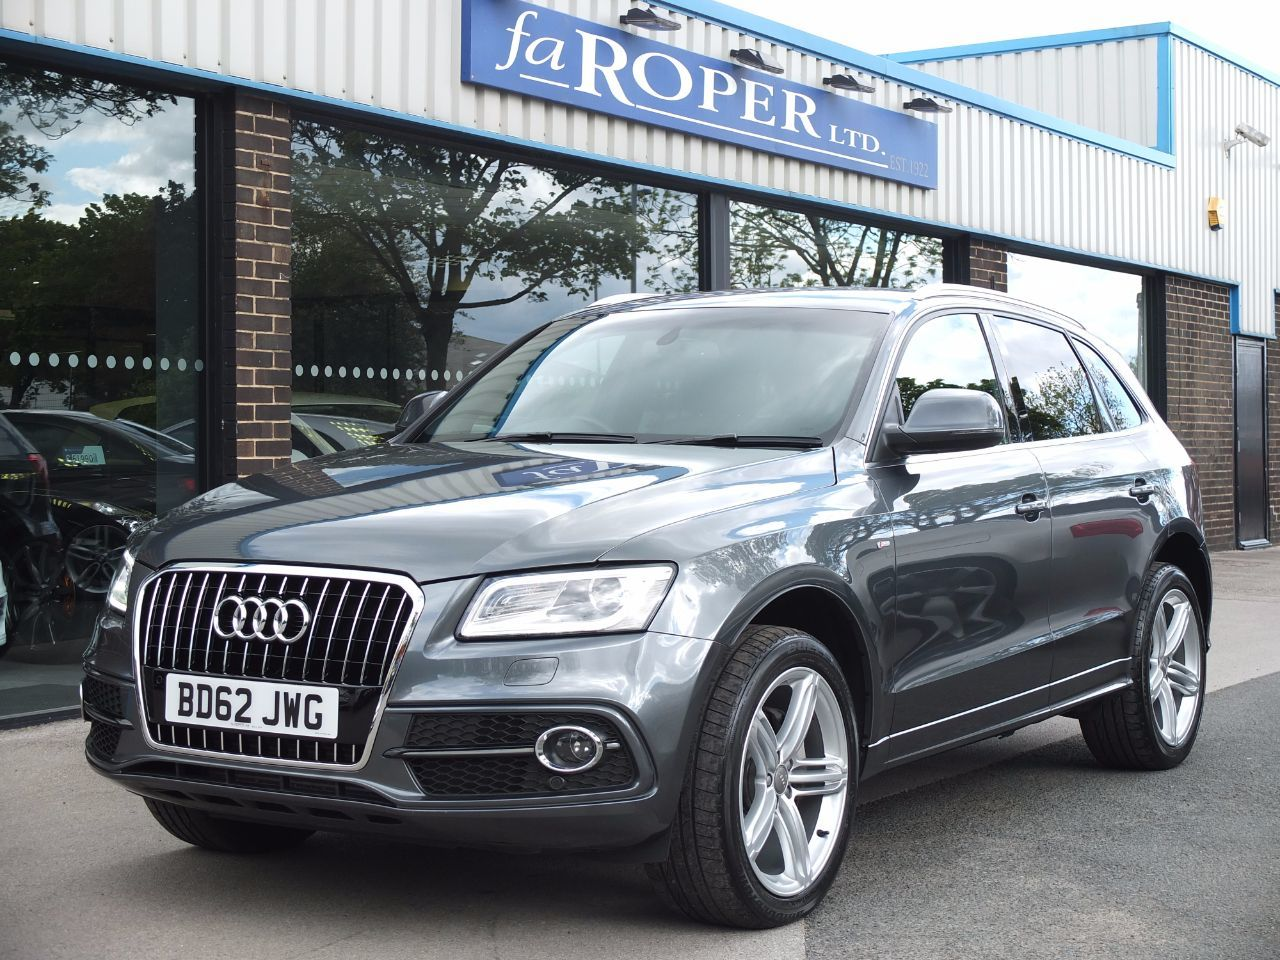 Audi Q5 2.0 TDI quattro S Line Plus S Tronic 177ps Estate Diesel Daytona Grey MetallicAudi Q5 2.0 TDI quattro S Line Plus S Tronic 177ps Estate Diesel Daytona Grey Metallic at fa Roper Ltd Bradford